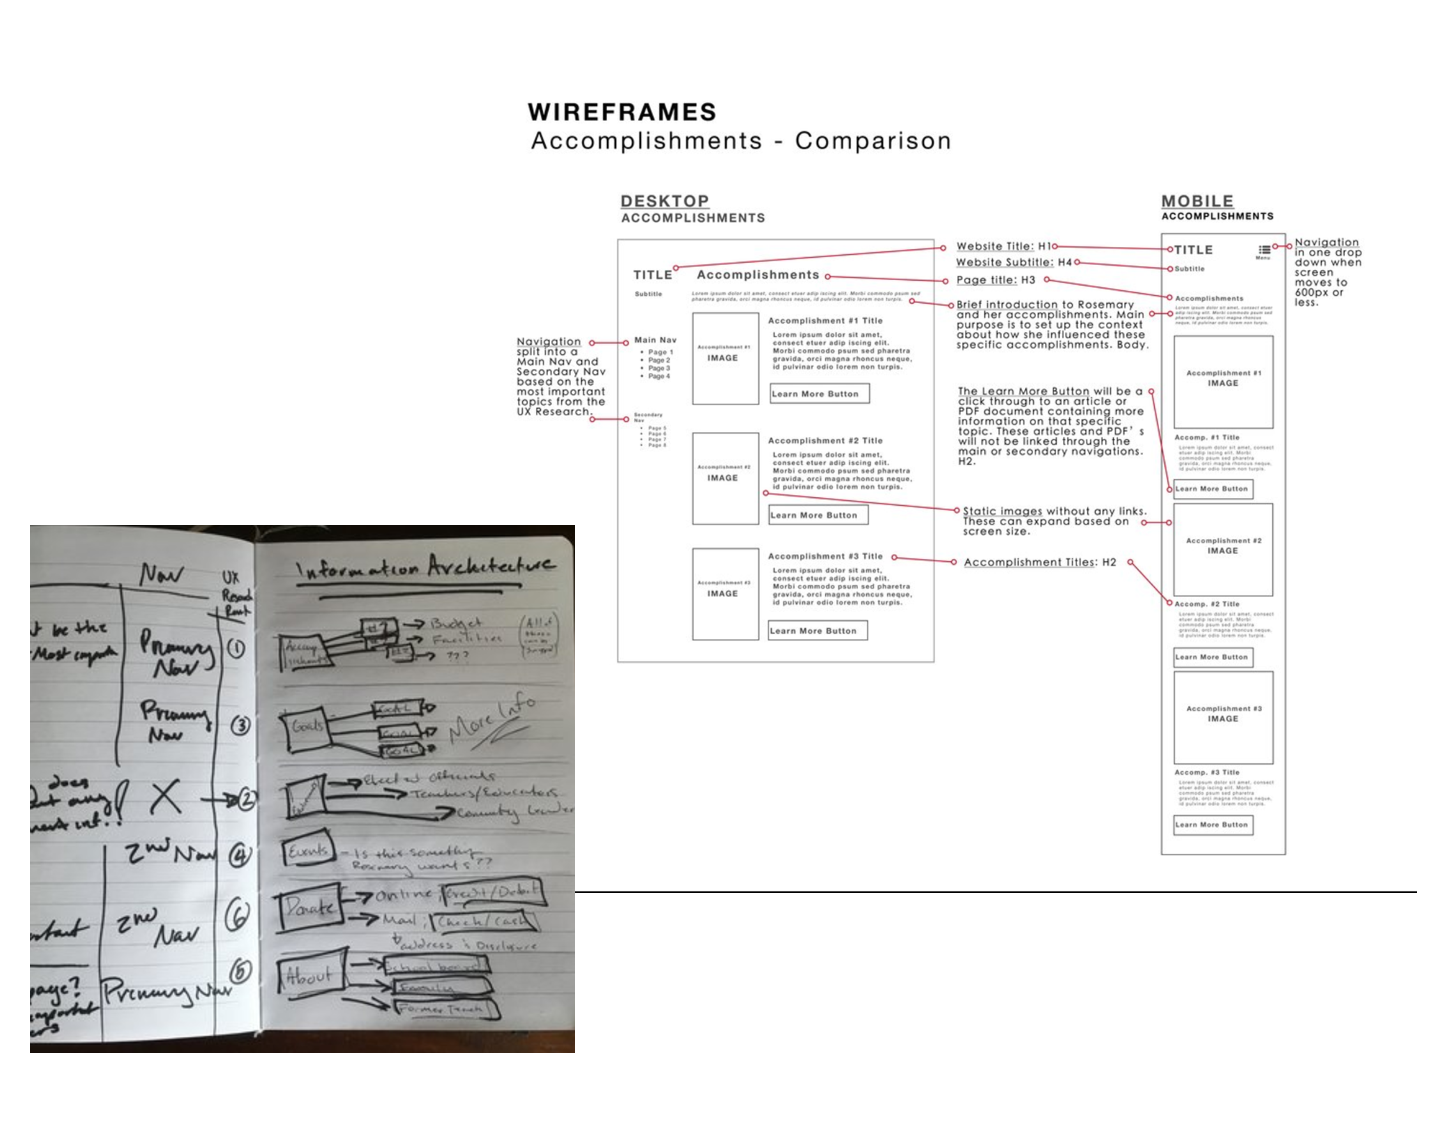 Information Architecture - Some examples of the design before putting the website into production.